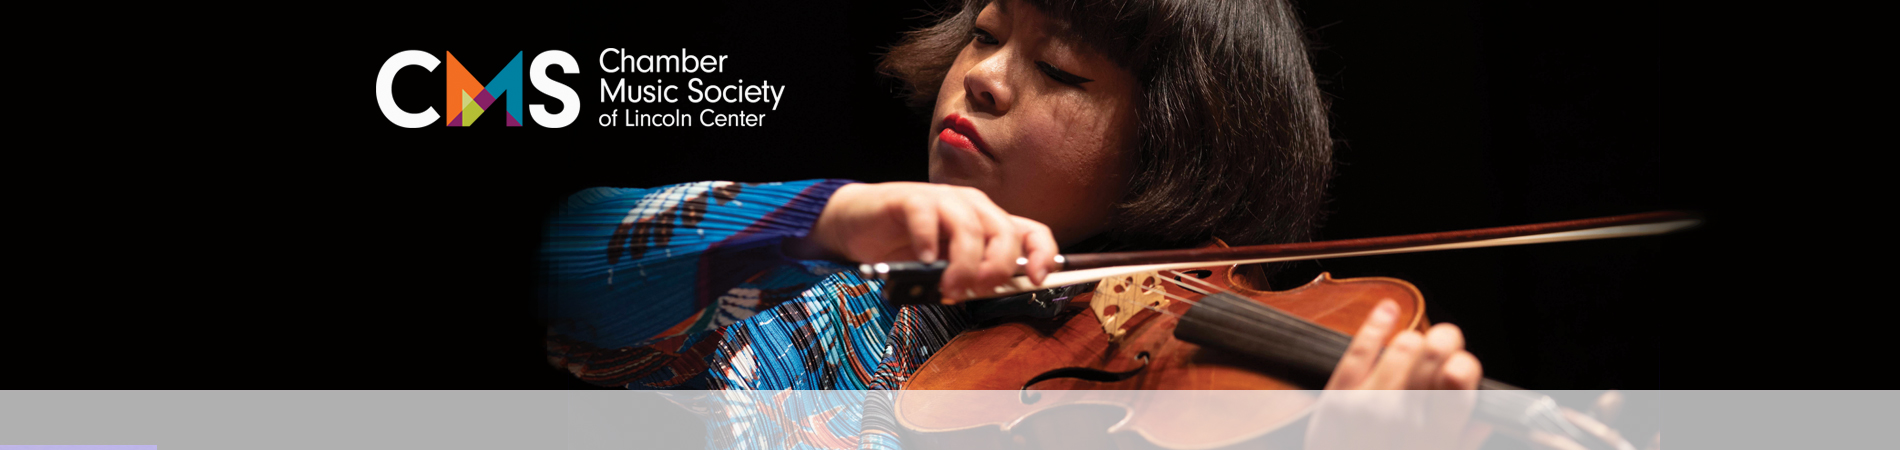 Violinist Yura Lee, Chamber Music Society of Lincoln Center